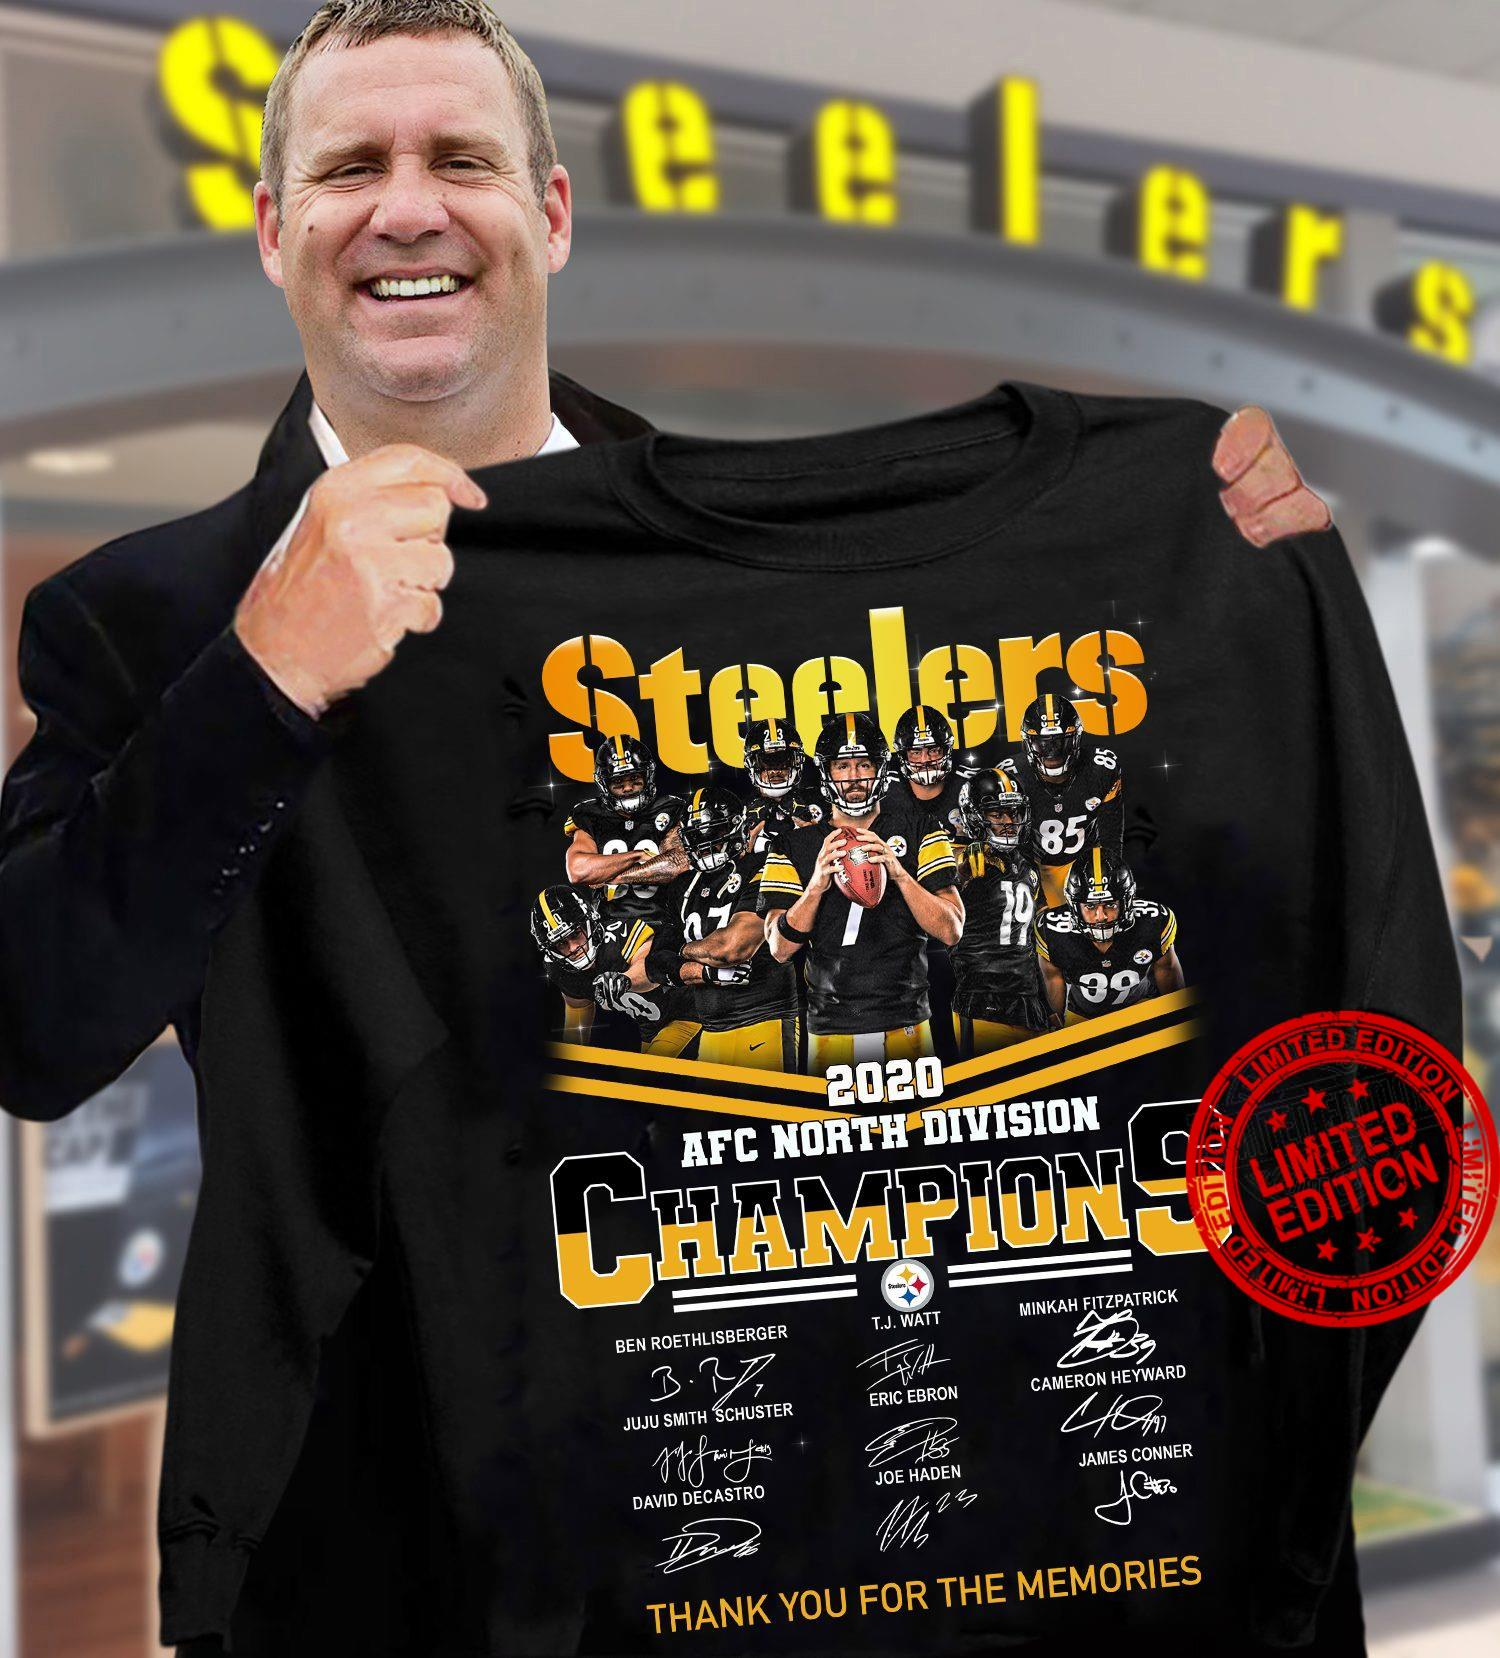 Steelers 2020 AFC North Division Champions Shirt